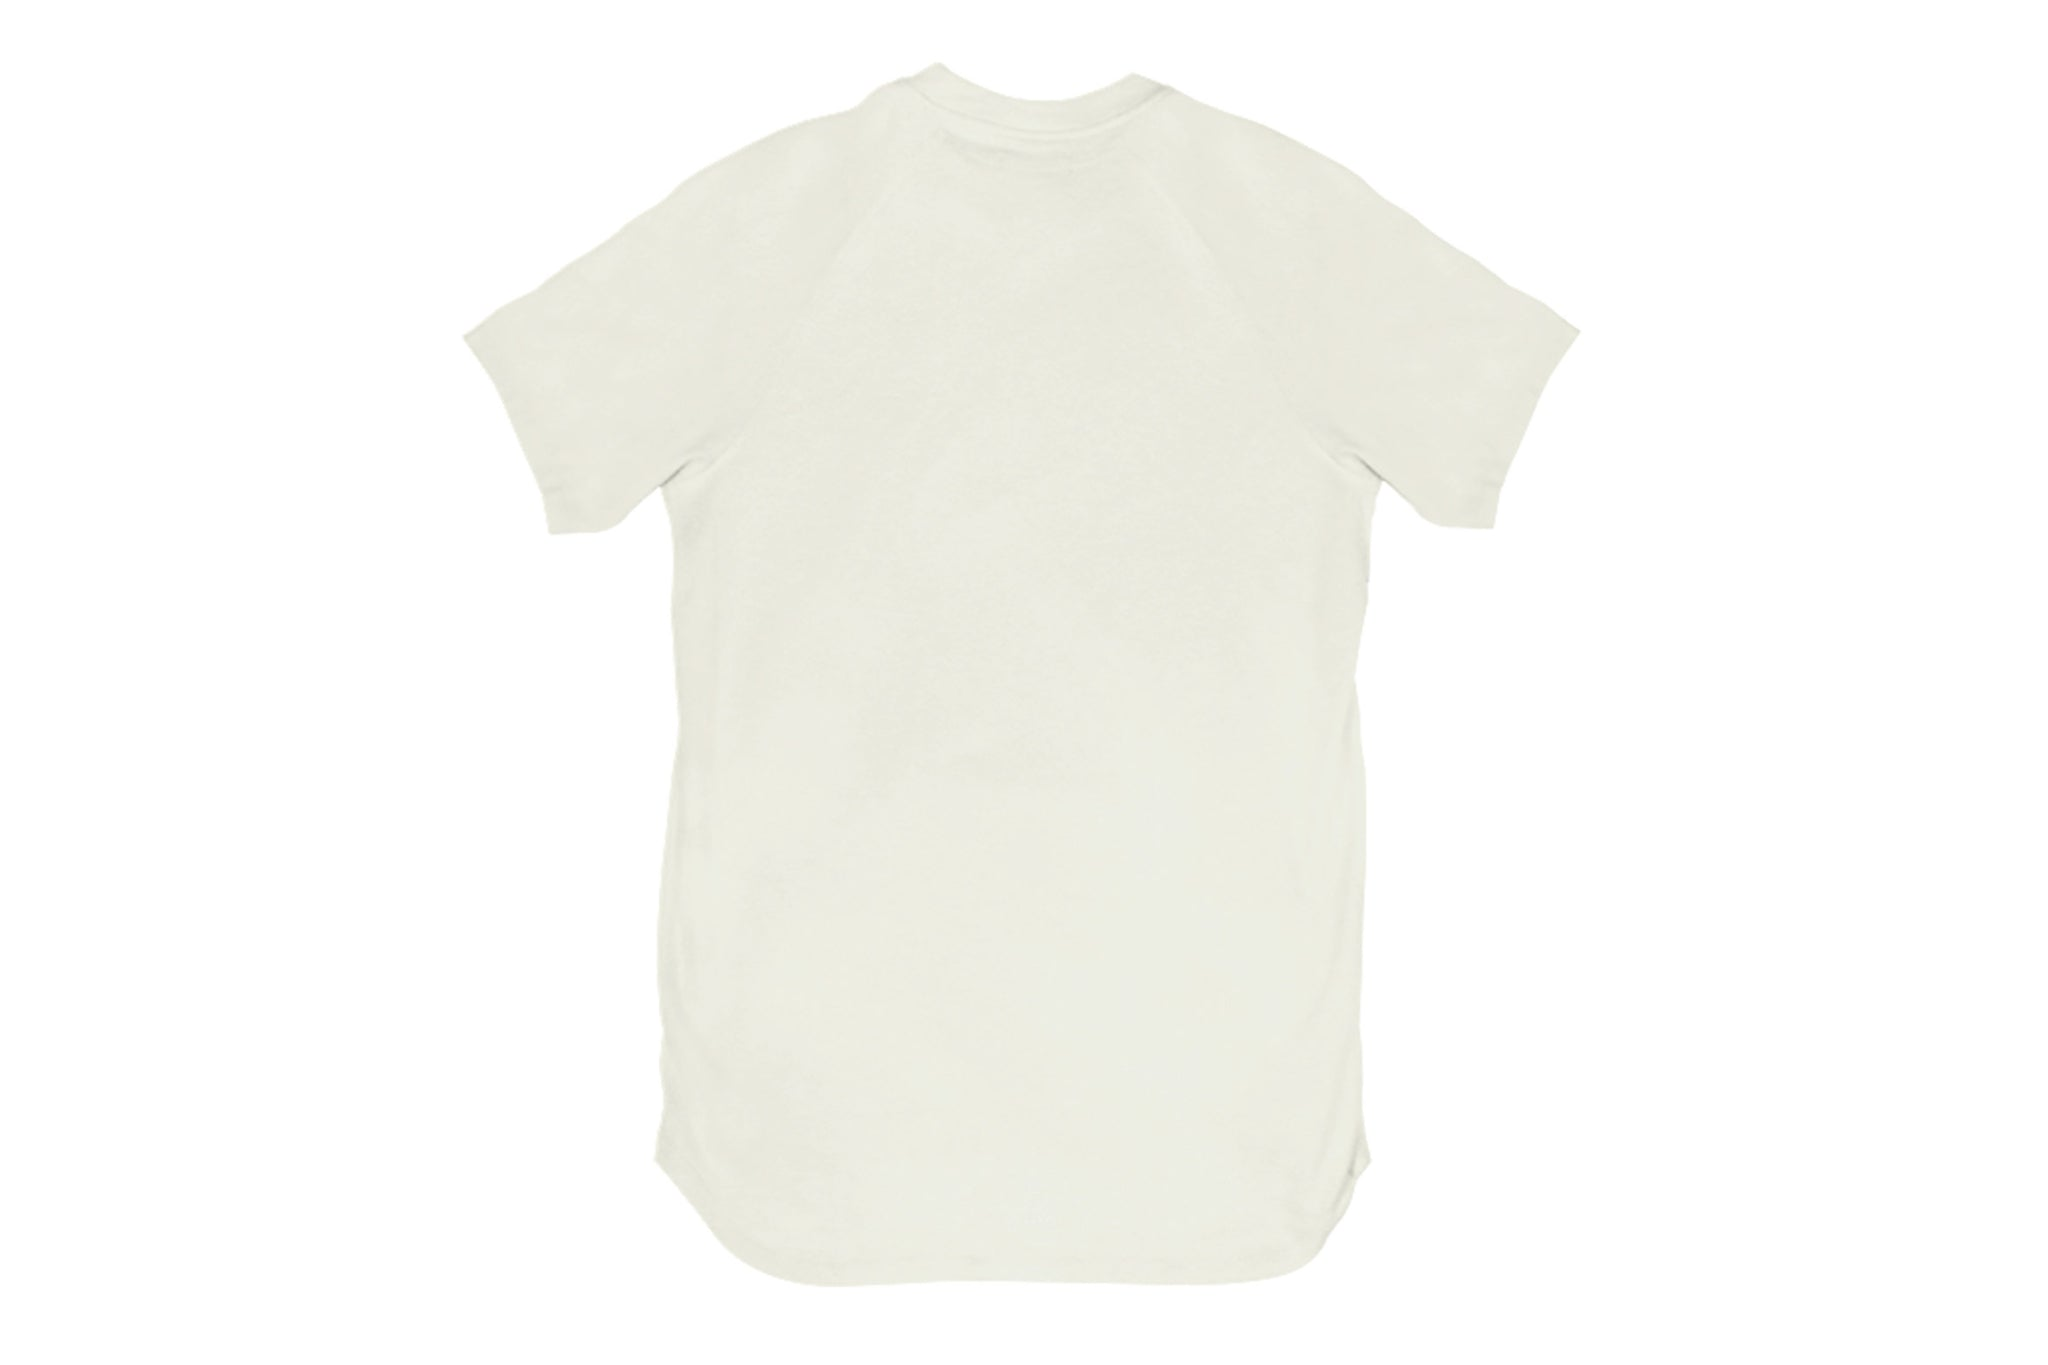 Warren Peace - Teller V-Neck T-Shirt in Fog Back - Designer Streetwear